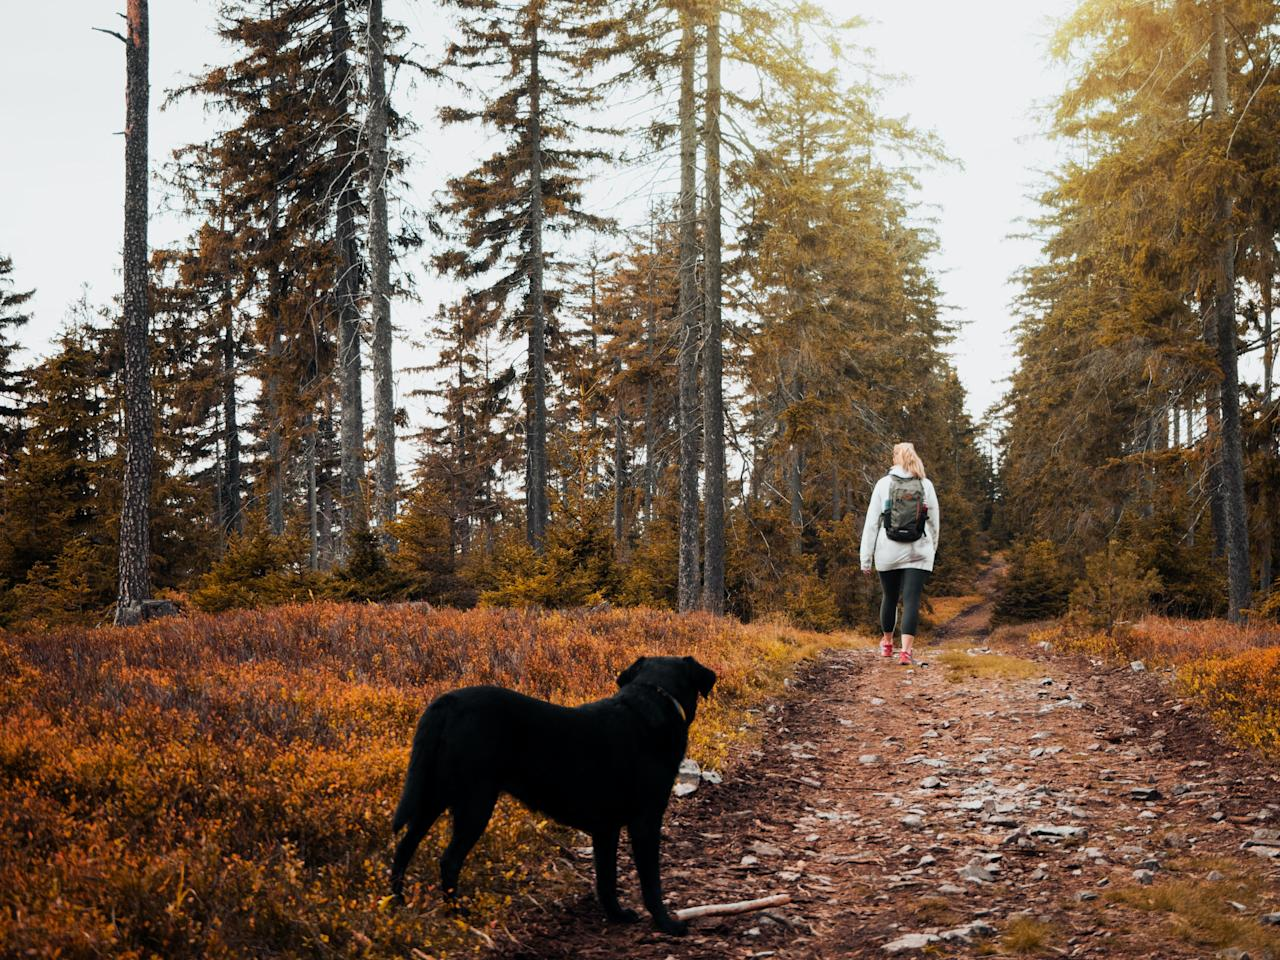 """<p>Our furry friends need daily exercise, and walking your <a href=""""https://www.prima.co.uk/search/?q=dog"""" target=""""_blank"""">dog</a> is a great way of getting outside, bonding with your pet, and exploring the great outdoors too.  </p><p>Autumn is a beautiful time to enjoy some scenic dog-walking, and there's plenty of amazing dog trails right on our doorstep.</p><p>Shannon Keary, Campaigns Manager at <a href=""""https://www.caninecottages.co.uk/"""" target=""""_blank"""">Canine Cottages</a>, says: """"Getting out with your dog for daily walks is one of the most important things you can do for your pet.  </p><p>""""Our list of the best dog walks in the UK will hopefully help inspire you to take a trip with your dog and explore the very best this country has to offer.""""</p><h2 class=""""body-h2"""">See five top dog walks in the UK for autumn below:</h2>"""